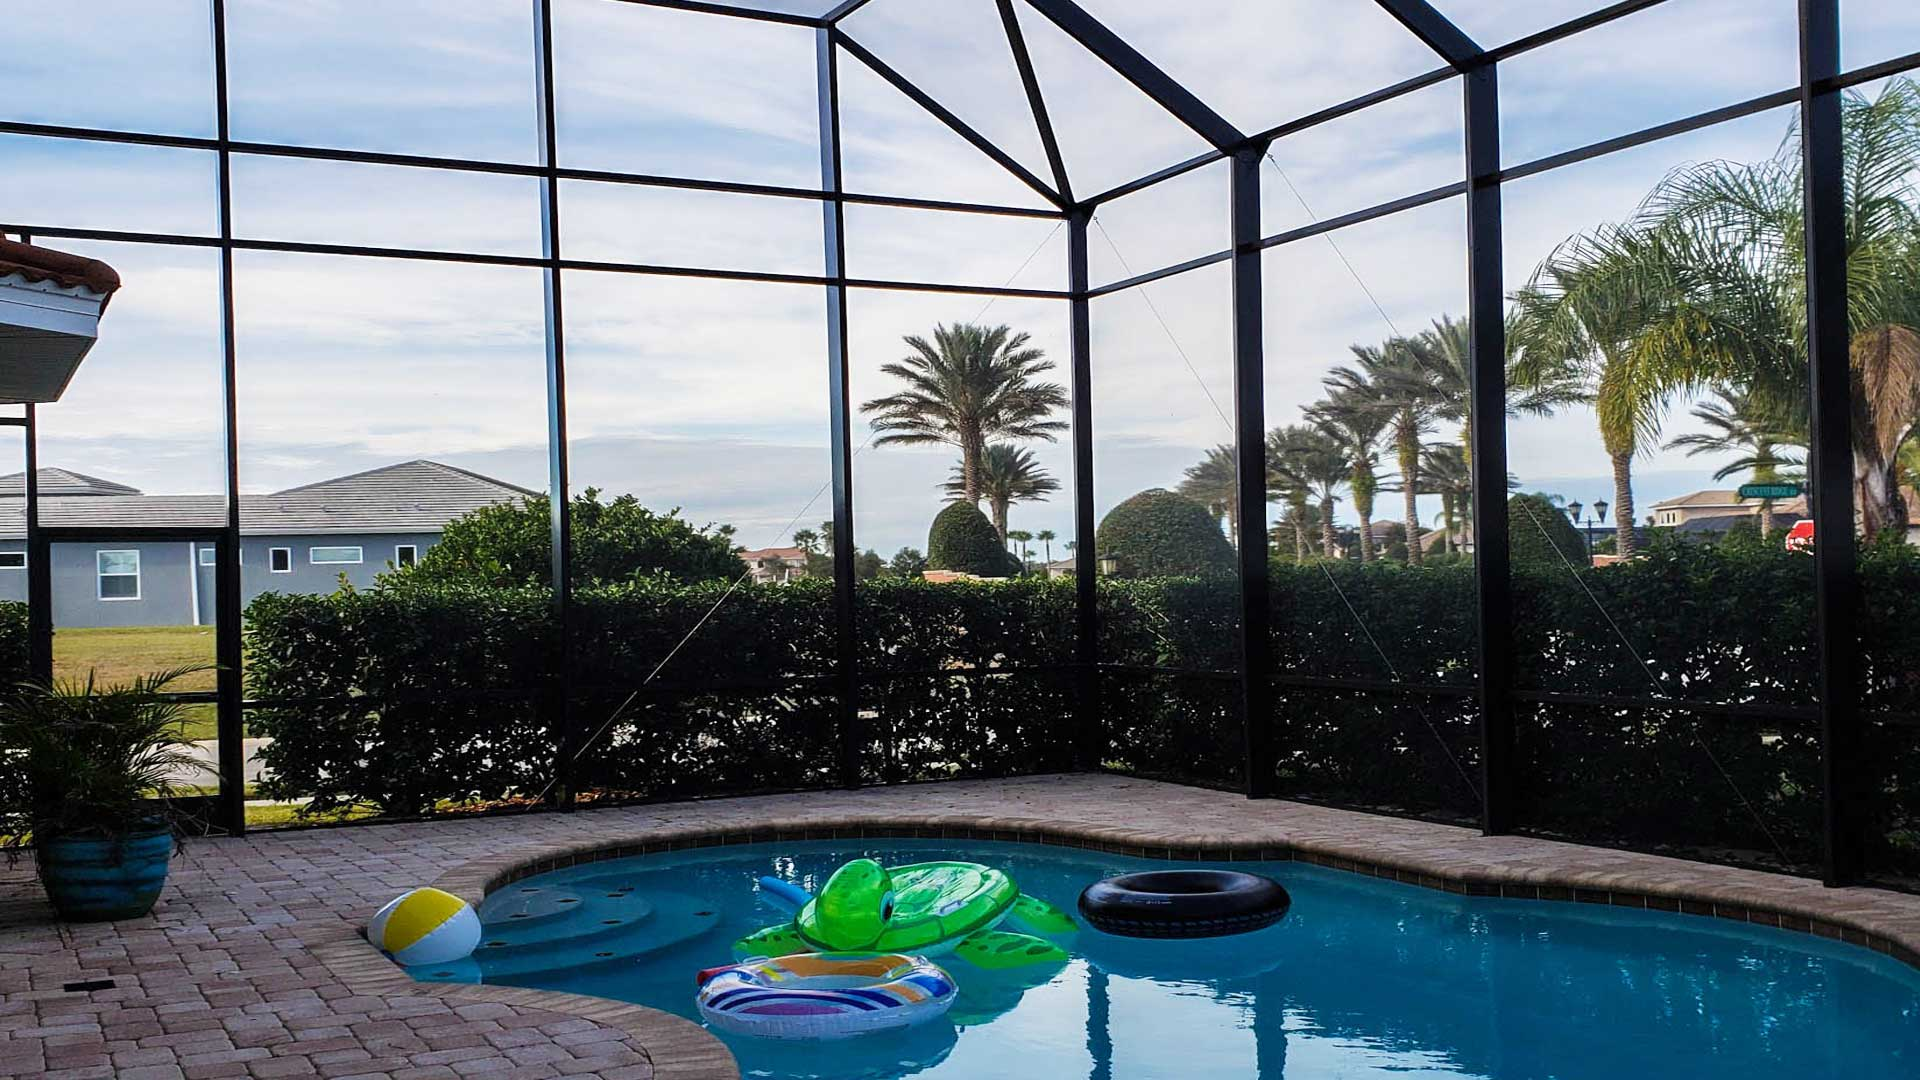 What Are the Differences Between a Florida Sunroom, Lanai, & Pool Cage?